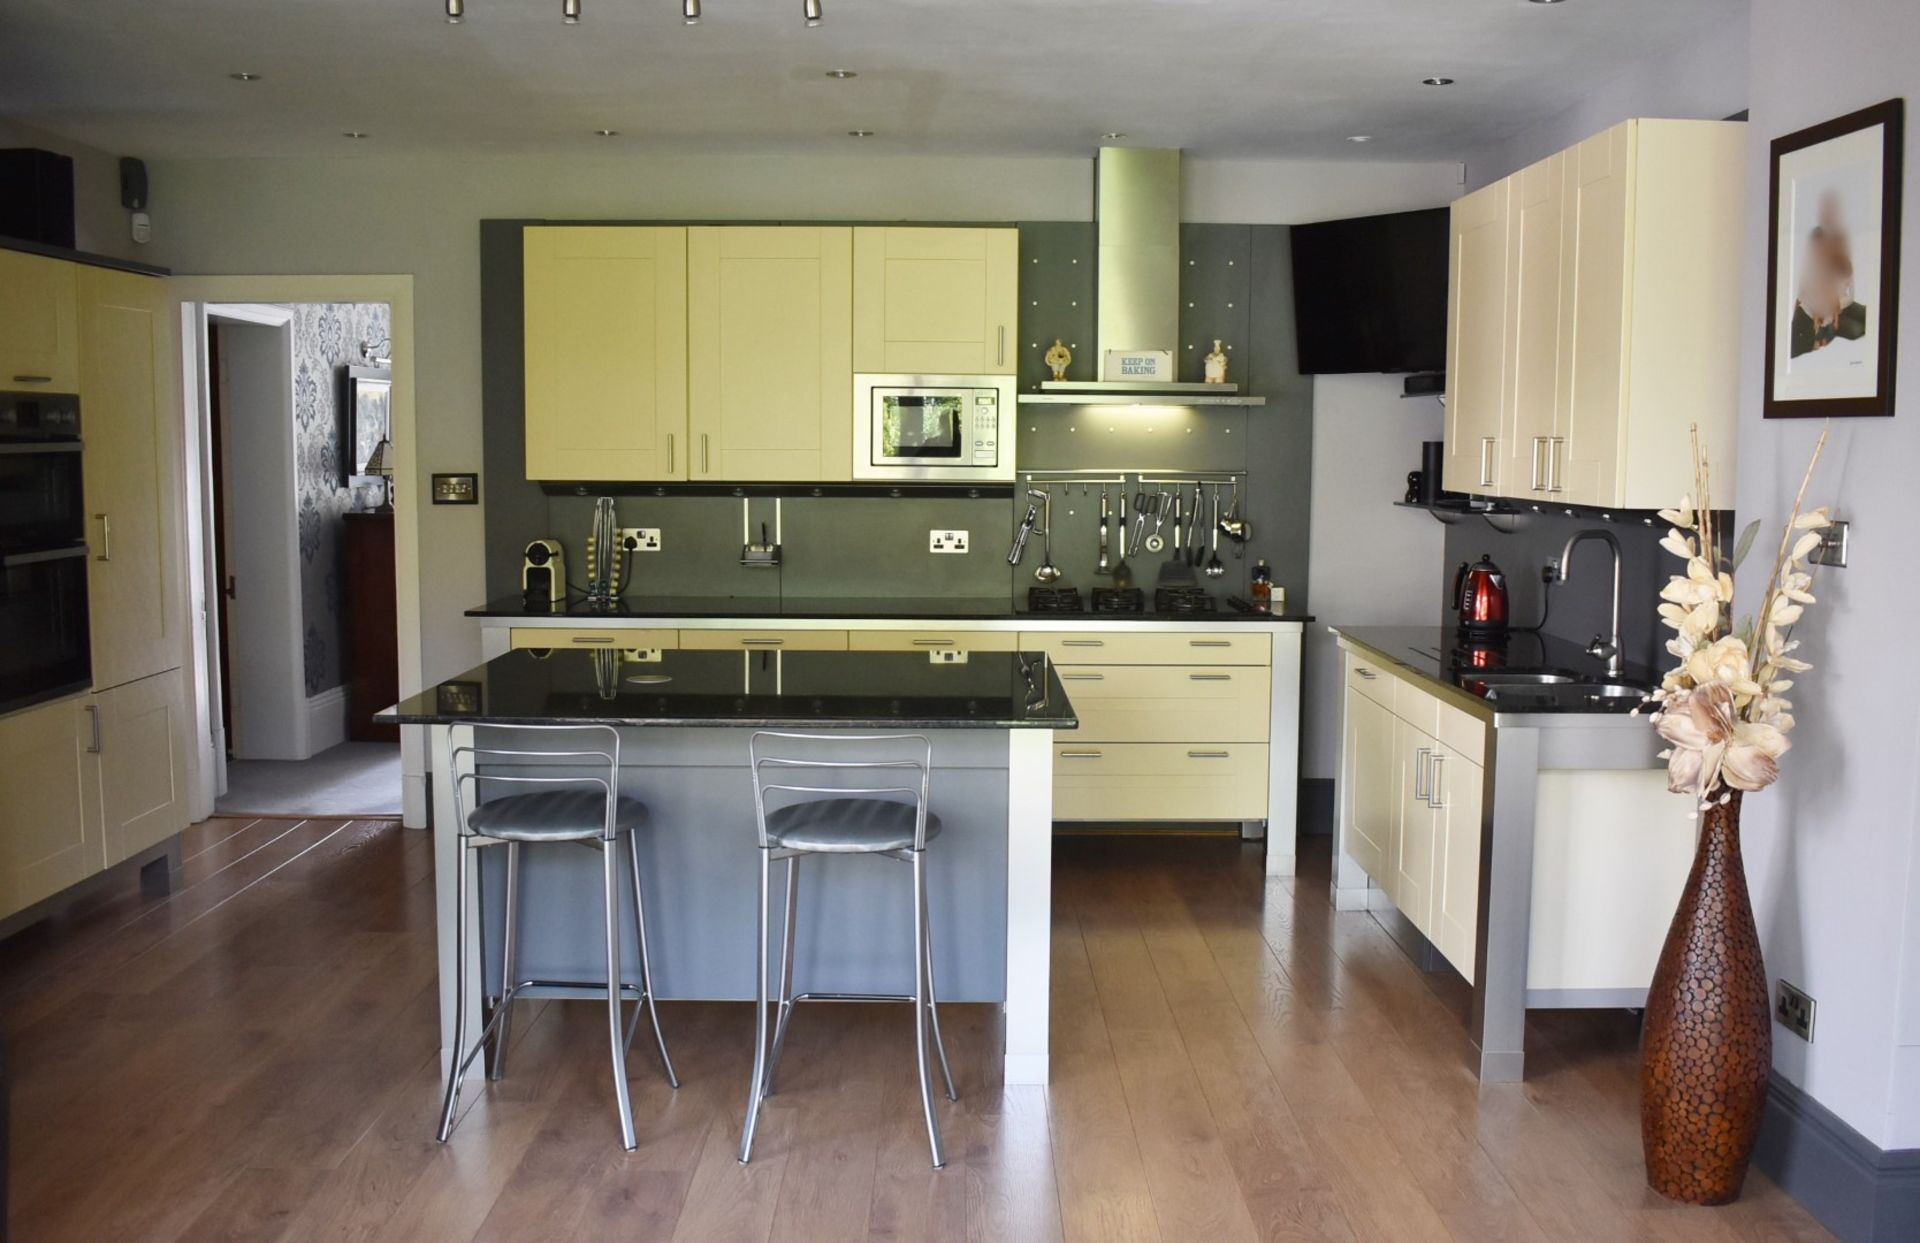 1 x SieMatic Contemporary Fitted Kitchen With Appliances - Features Shaker Style Doors, Central - Image 87 of 96